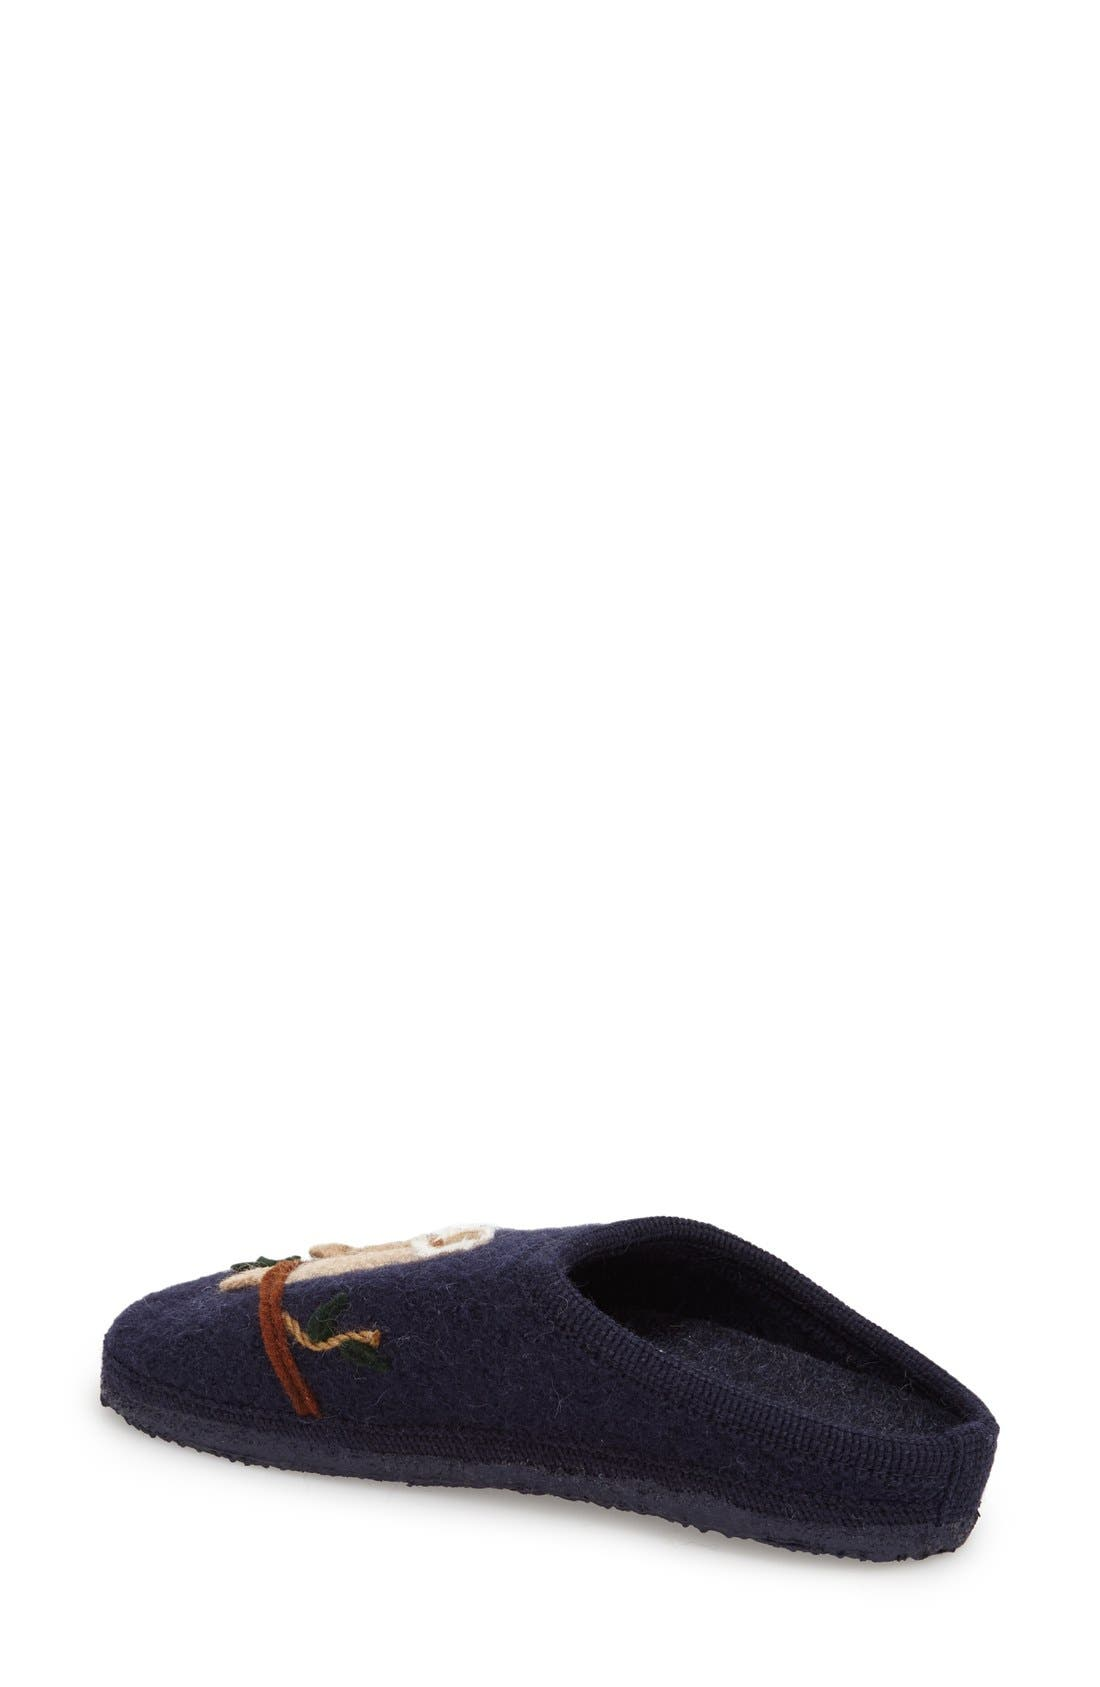 'Mado' Wool Slipper,                             Alternate thumbnail 2, color,                             Navy Wool